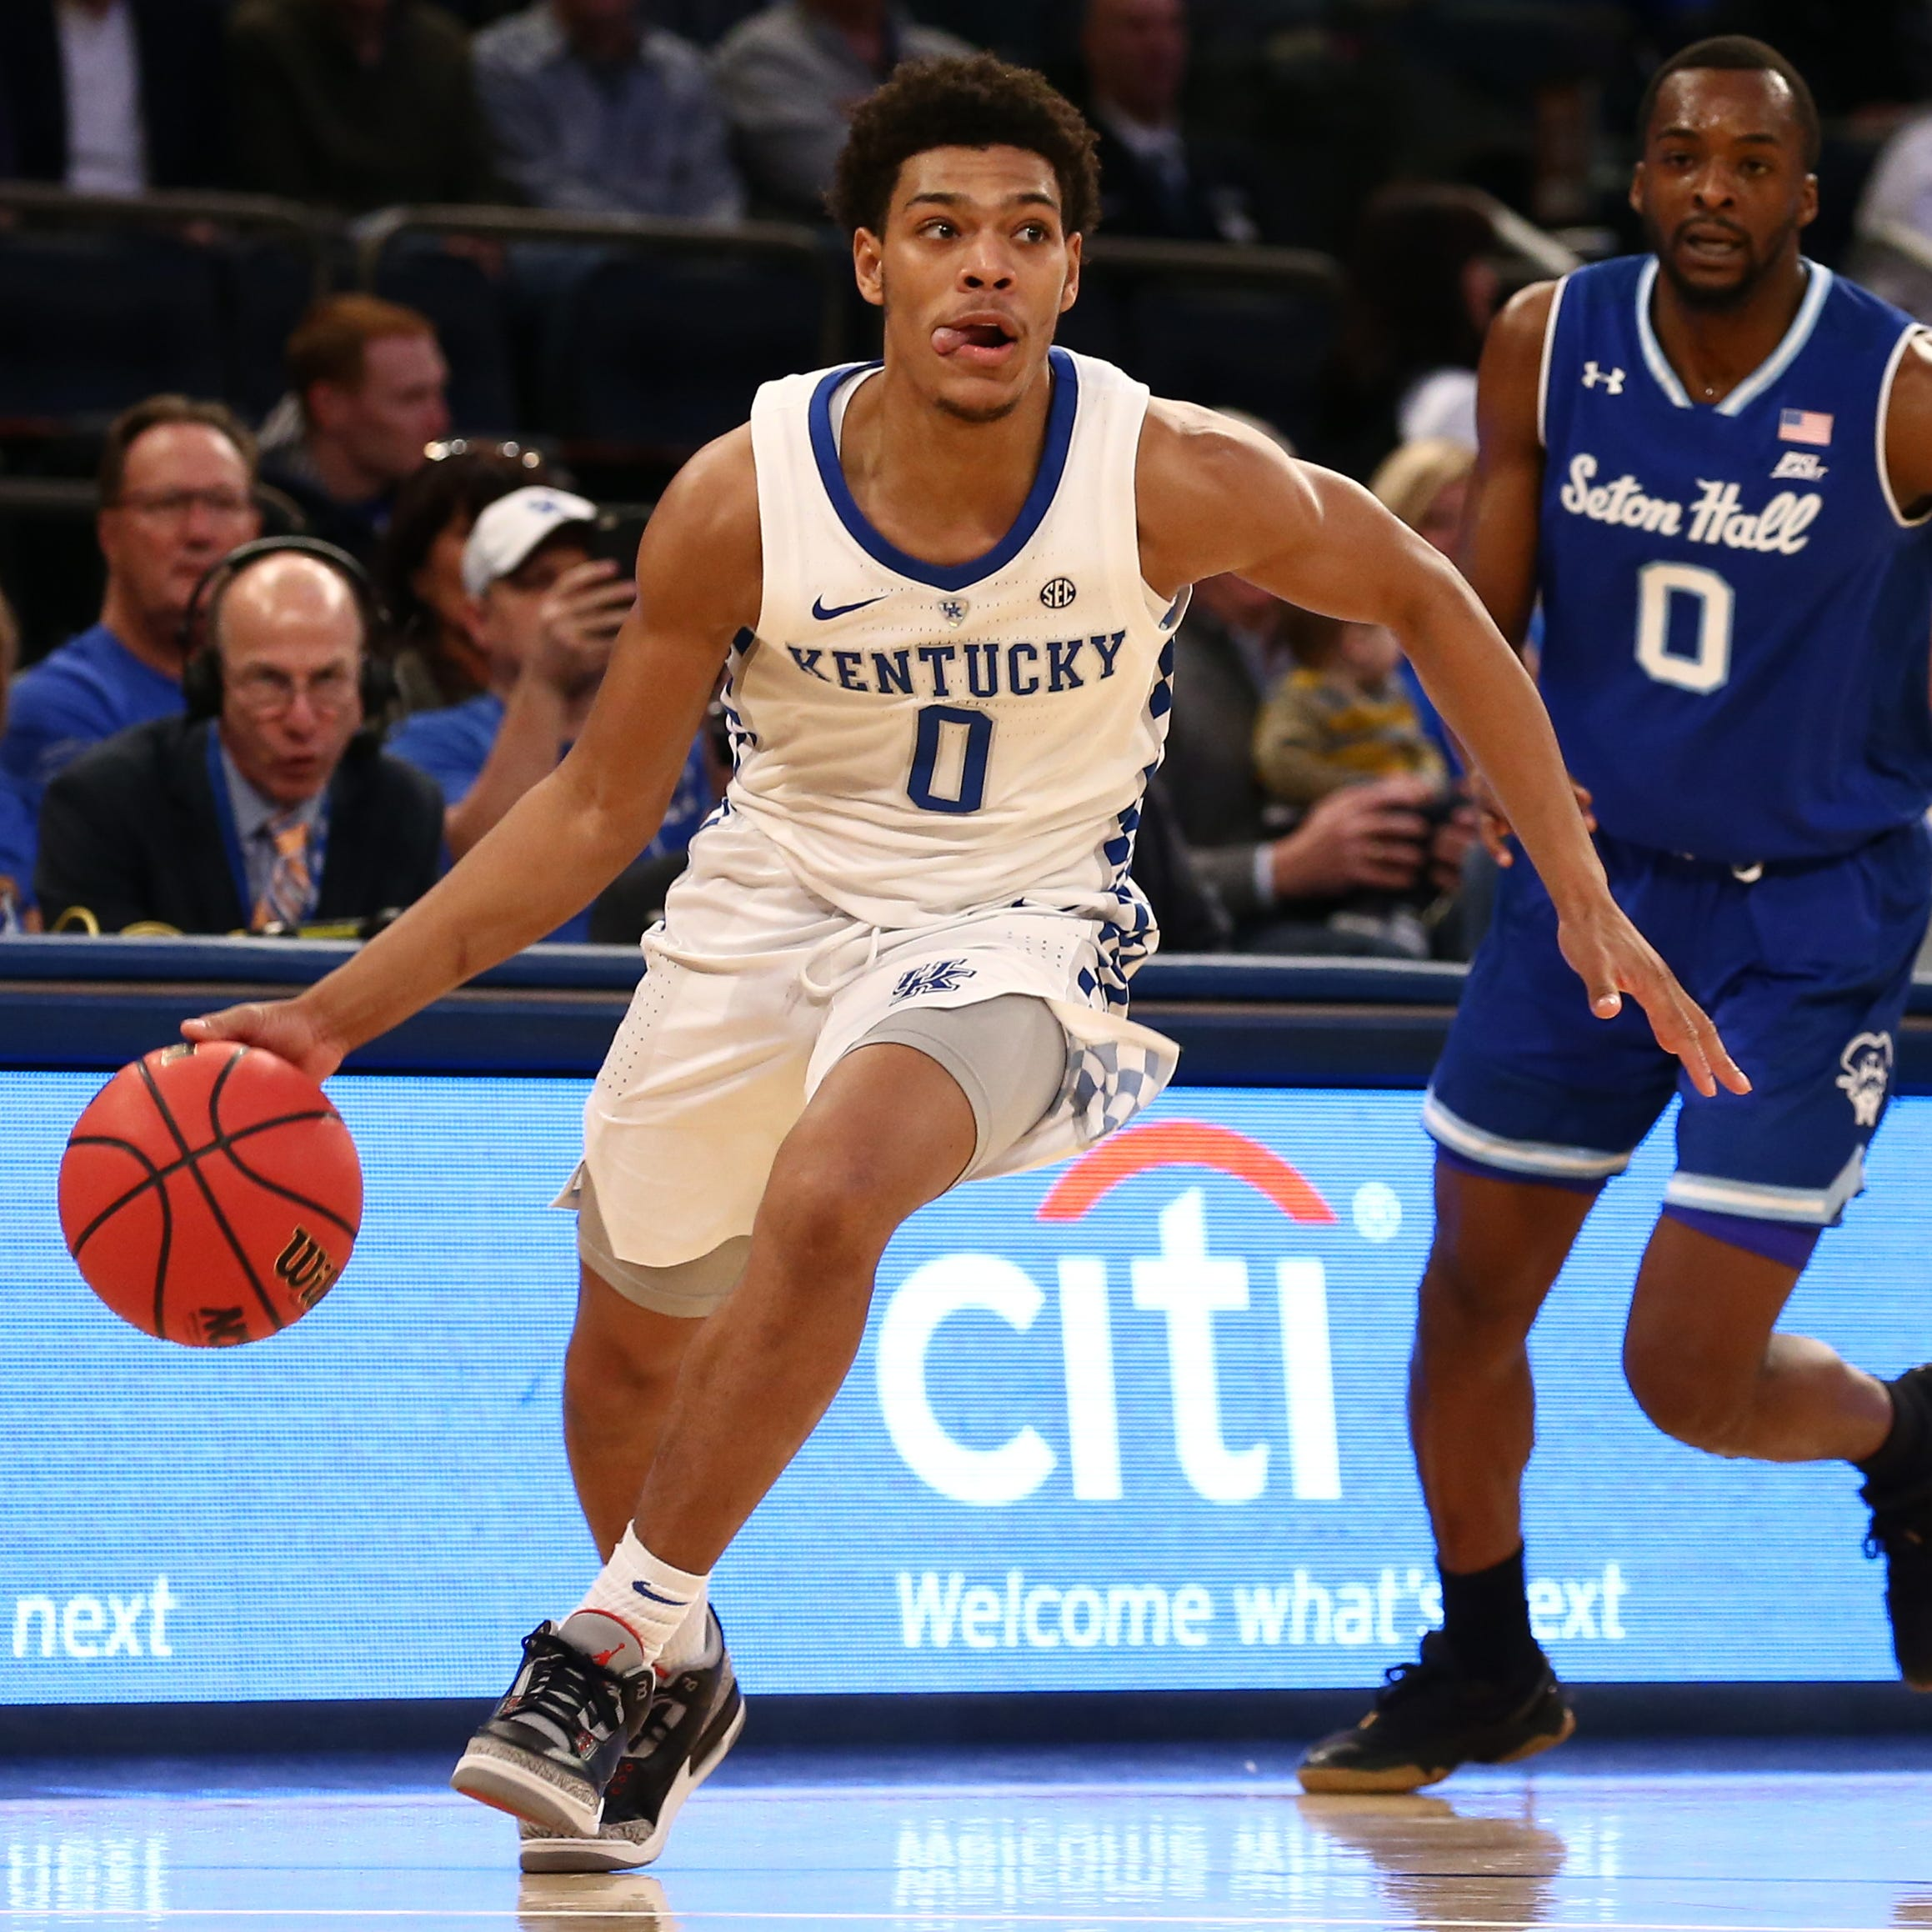 Kentucky basketball guard Quade Green is expected to transfer soon